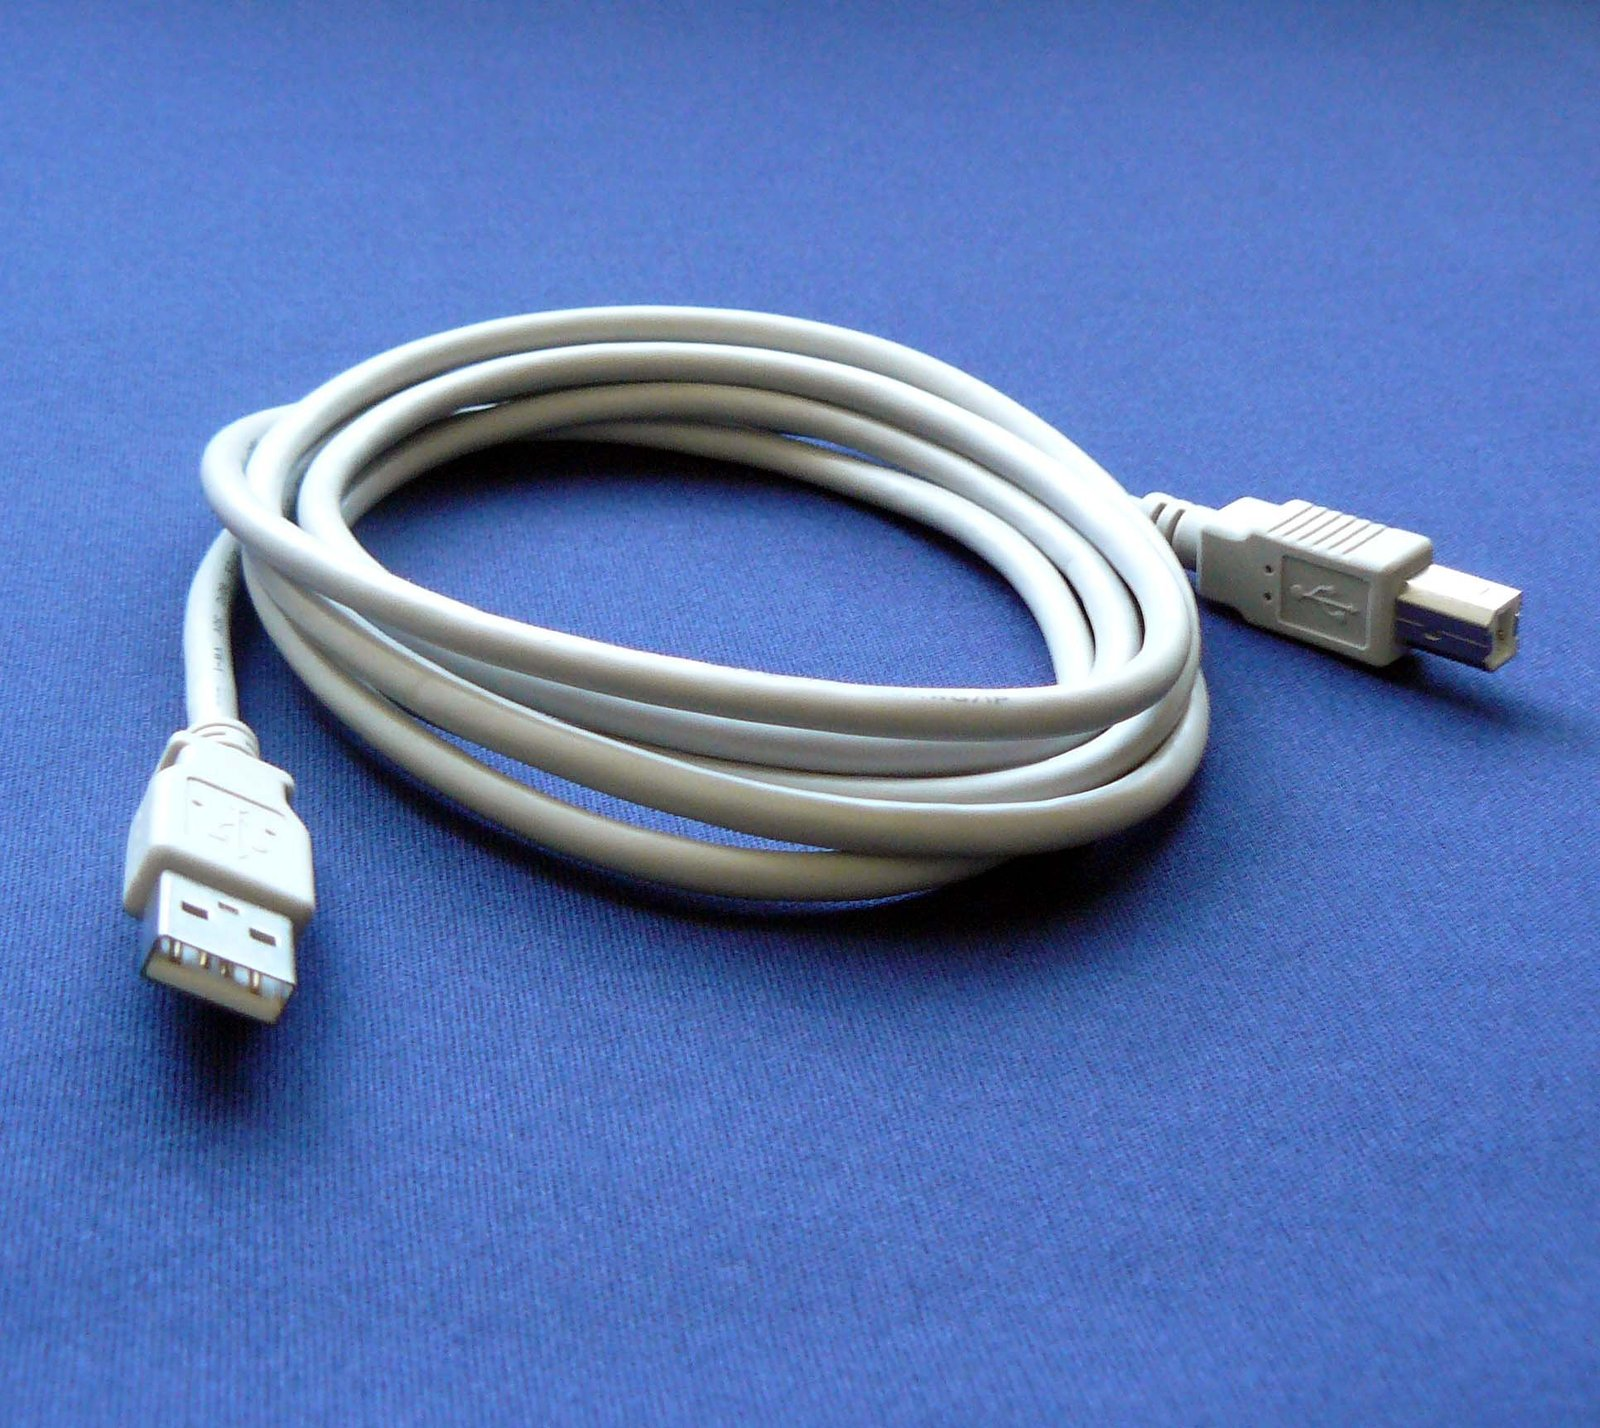 Primary image for Canon Pixma MP250 Printer Compatible USB 2.0 Cable Cord for PC, Notebook, Mac...